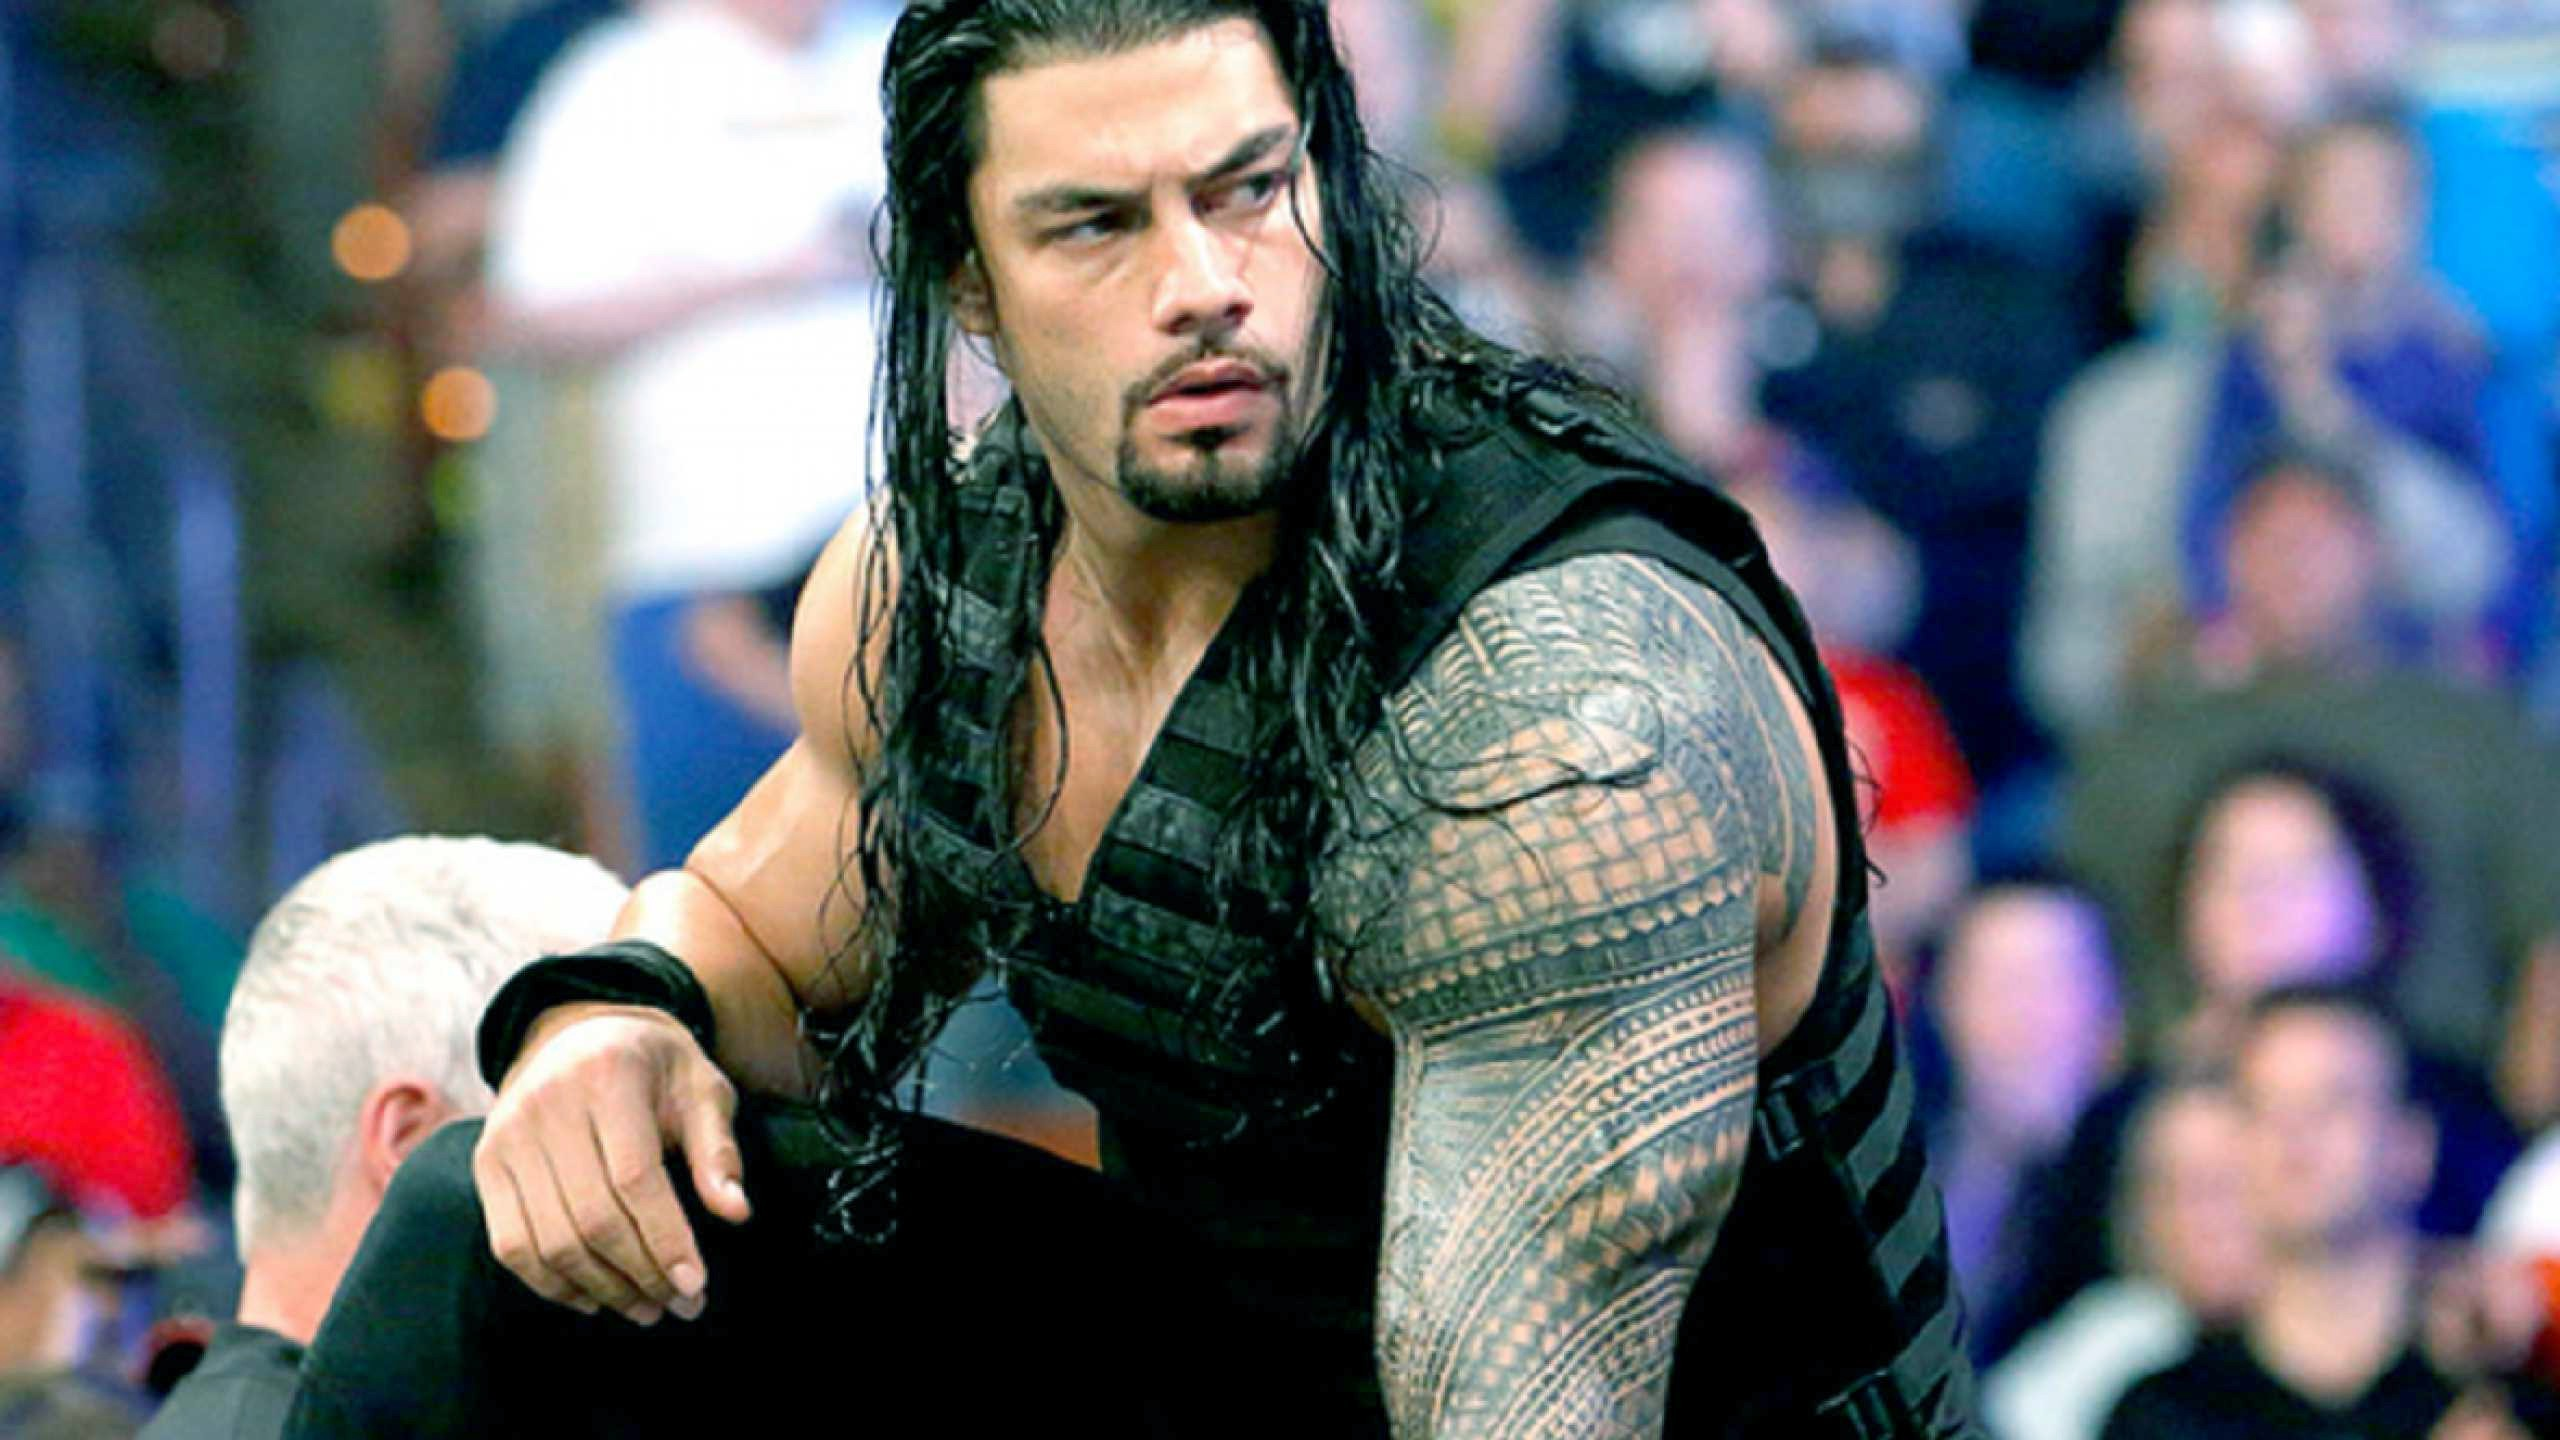 2560x1440 Roman Reigns Wrestler WWE 2016